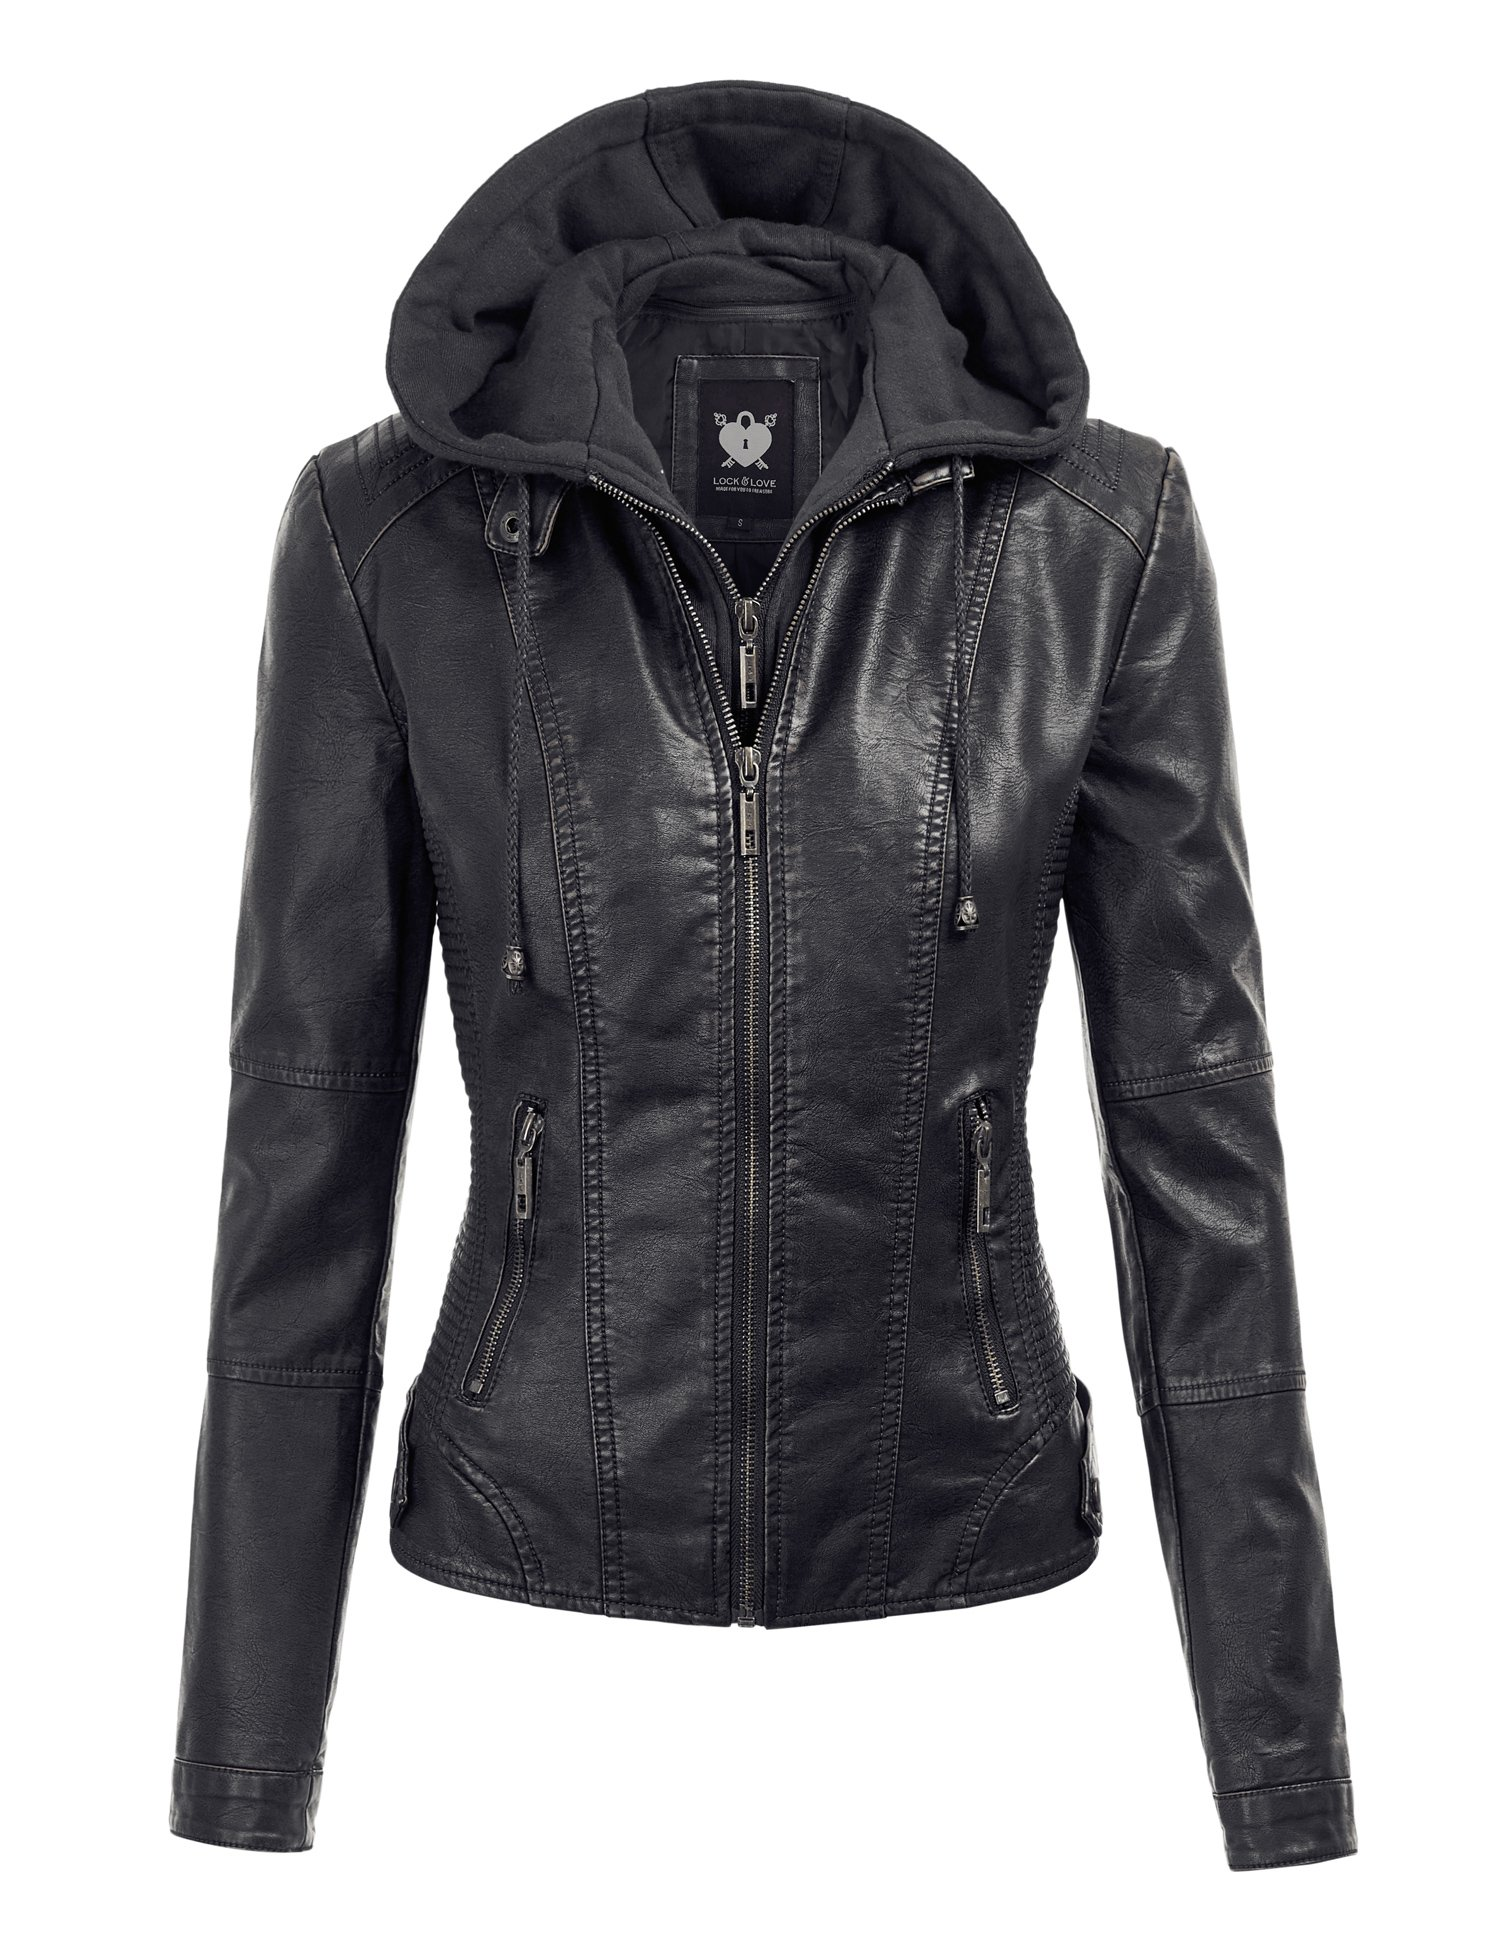 WJC1044 Womens Faux Leather Quilted Motorcycle Jacket With Hoodie M Black